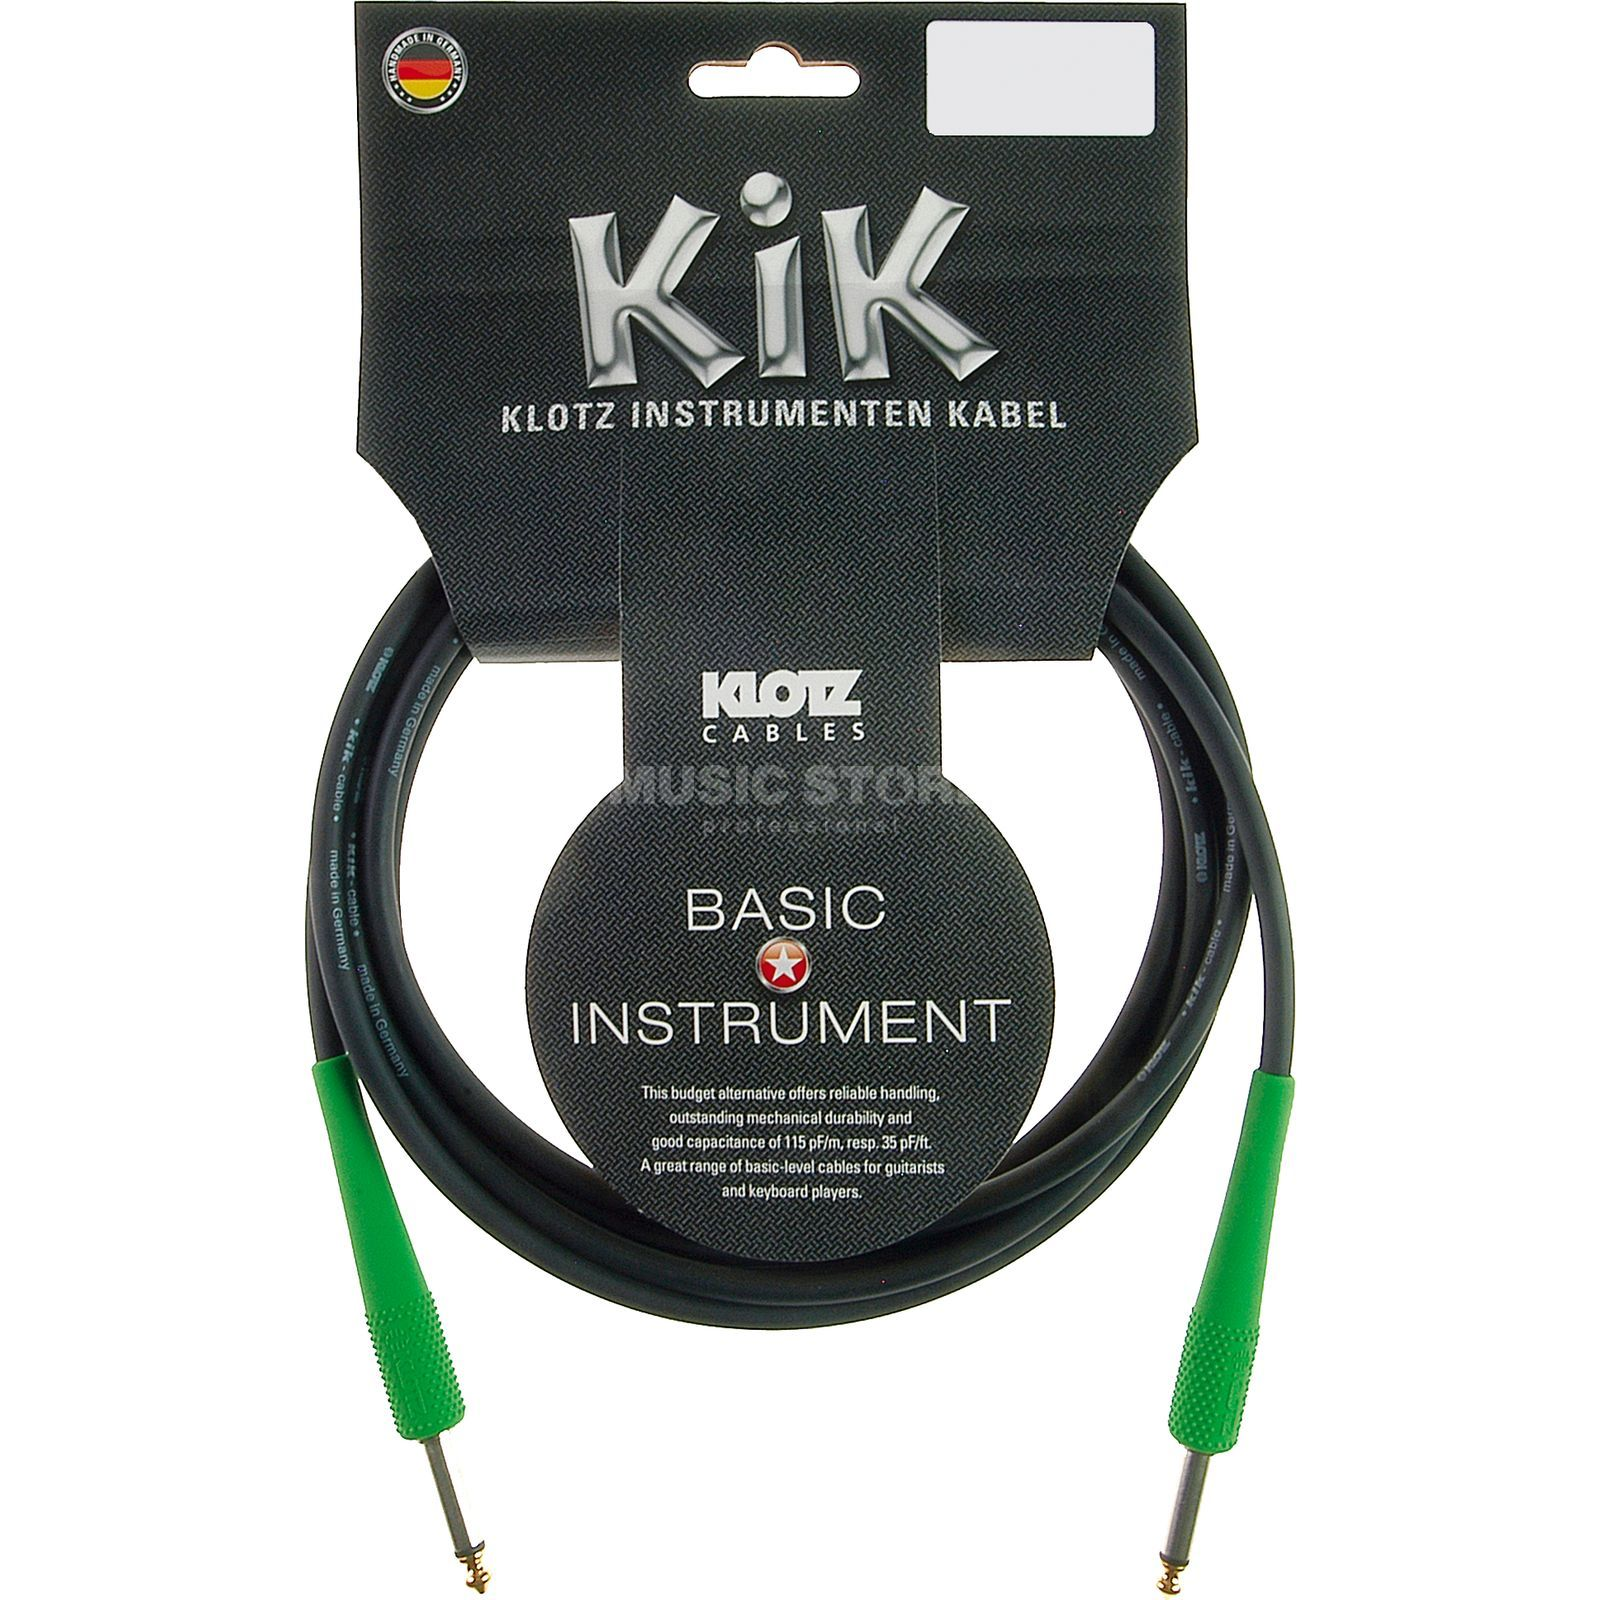 Klotz Instrument Cable 6m black KIK-Coloured fresh green Produktbillede